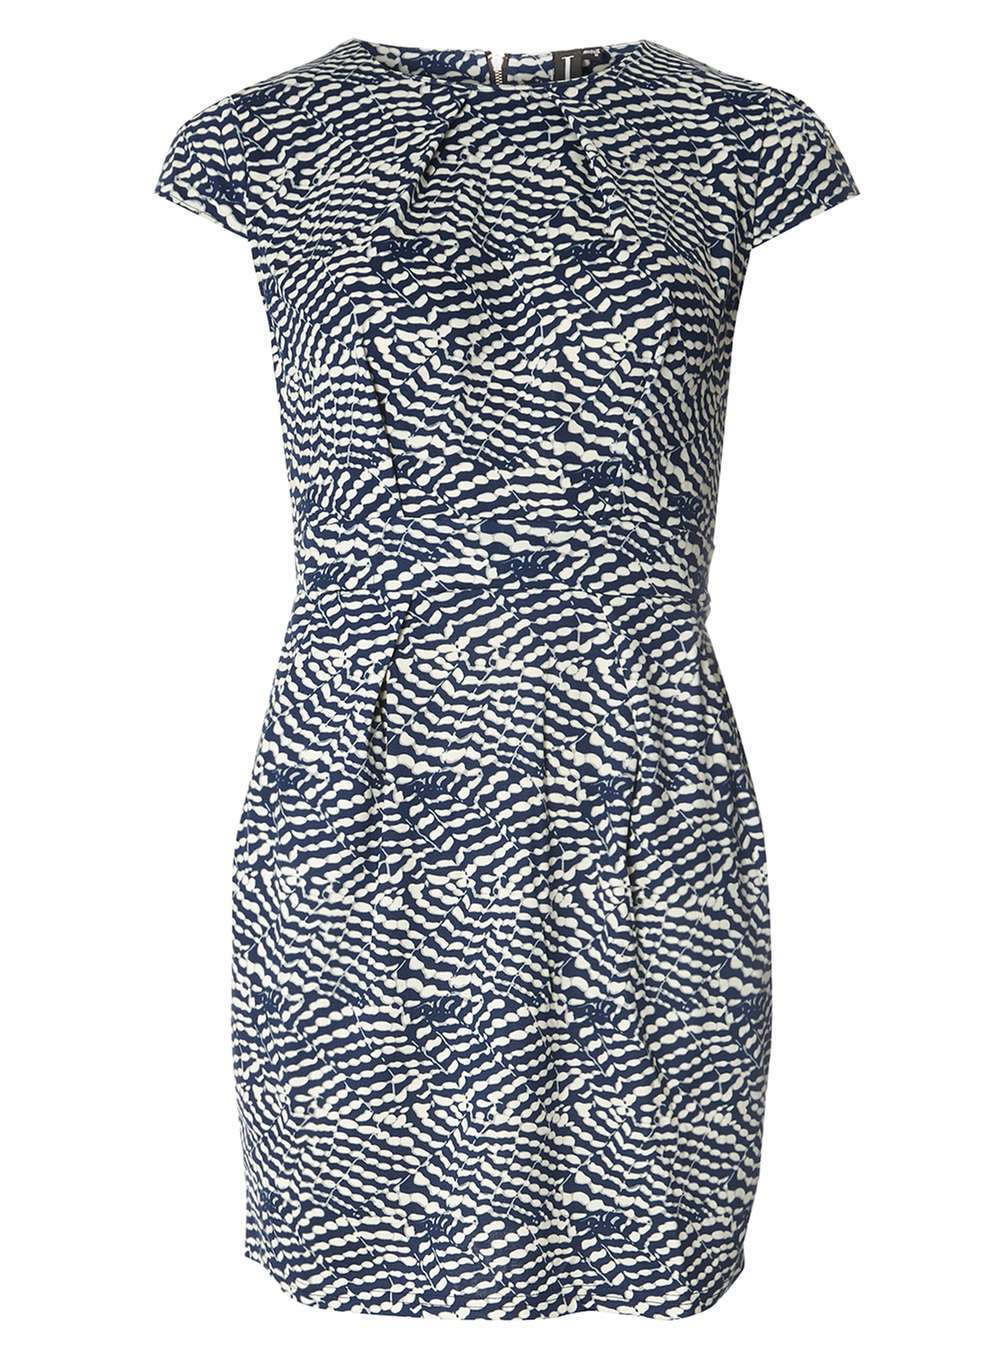 Womens **Izabel London Multi Blue Dress Blue - style: shift; sleeve style: capped; fit: tailored/fitted; back detail: tie at back; secondary colour: ivory/cream; predominant colour: navy; occasions: evening; length: just above the knee; fibres: polyester/polyamide - stretch; neckline: crew; sleeve length: short sleeve; pattern type: fabric; pattern: patterned/print; texture group: jersey - stretchy/drapey; season: a/w 2016; wardrobe: event